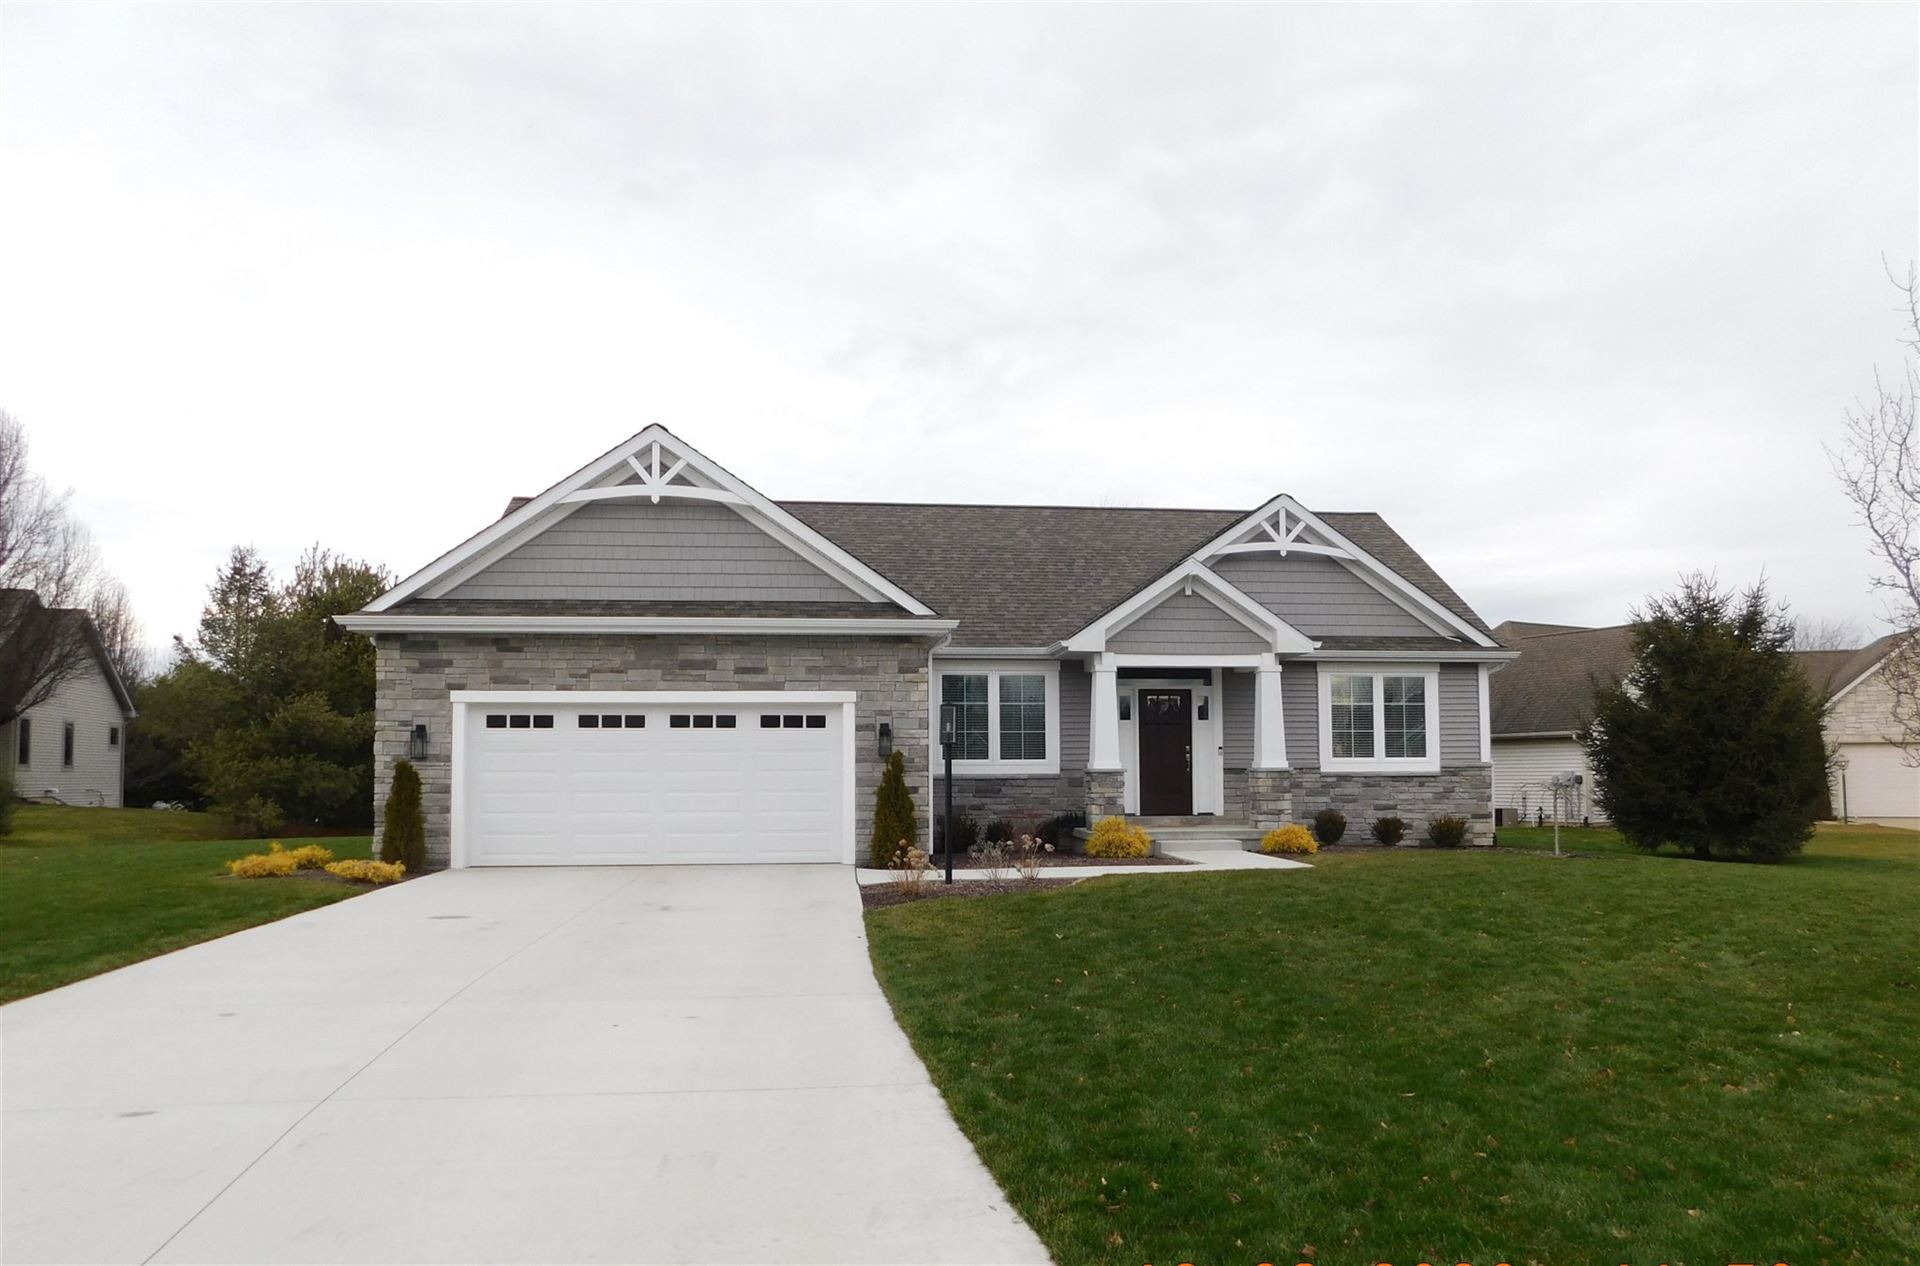 6505 Cuddy Court, South Bend, IN 46628 - MLS#: 202100263